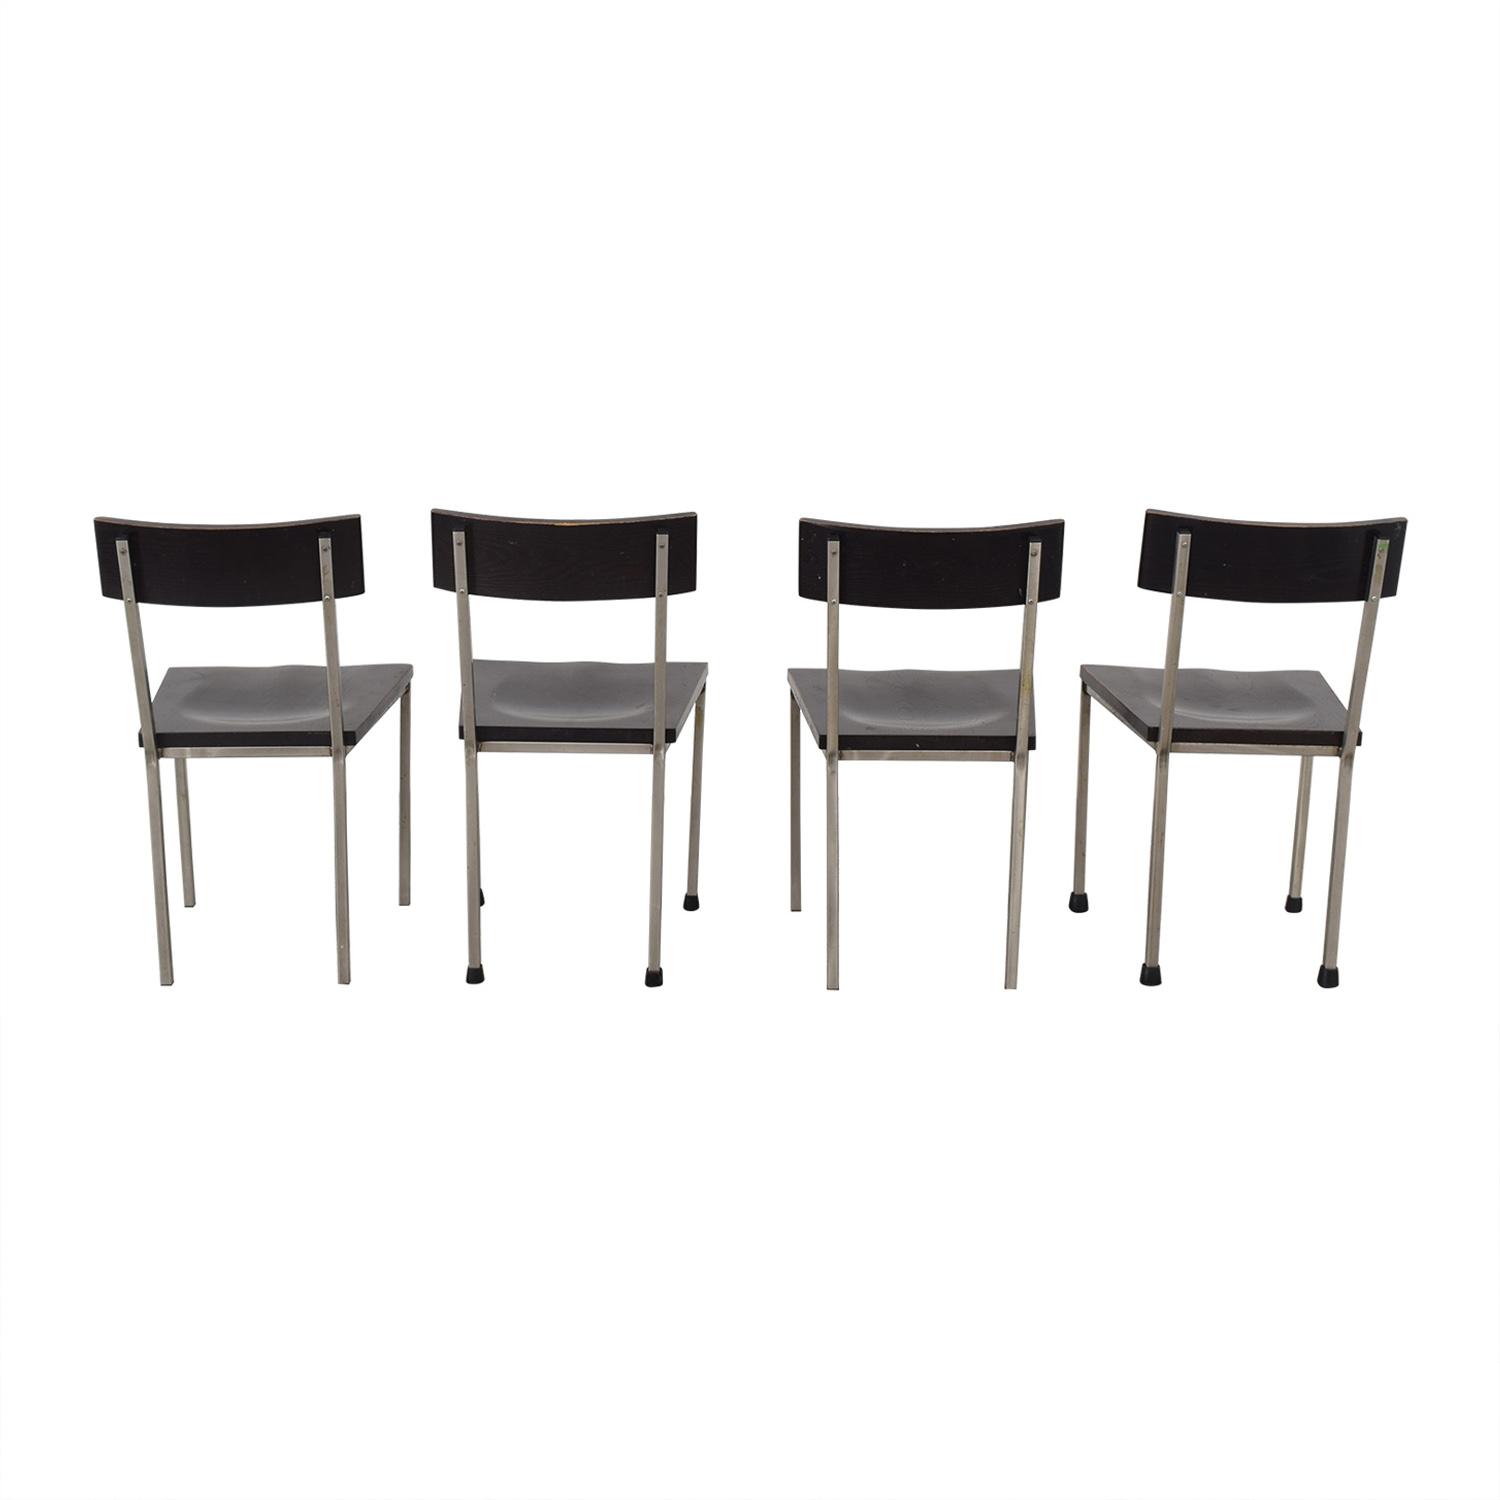 Parallel Lines Parallel Lines Dining Chairs